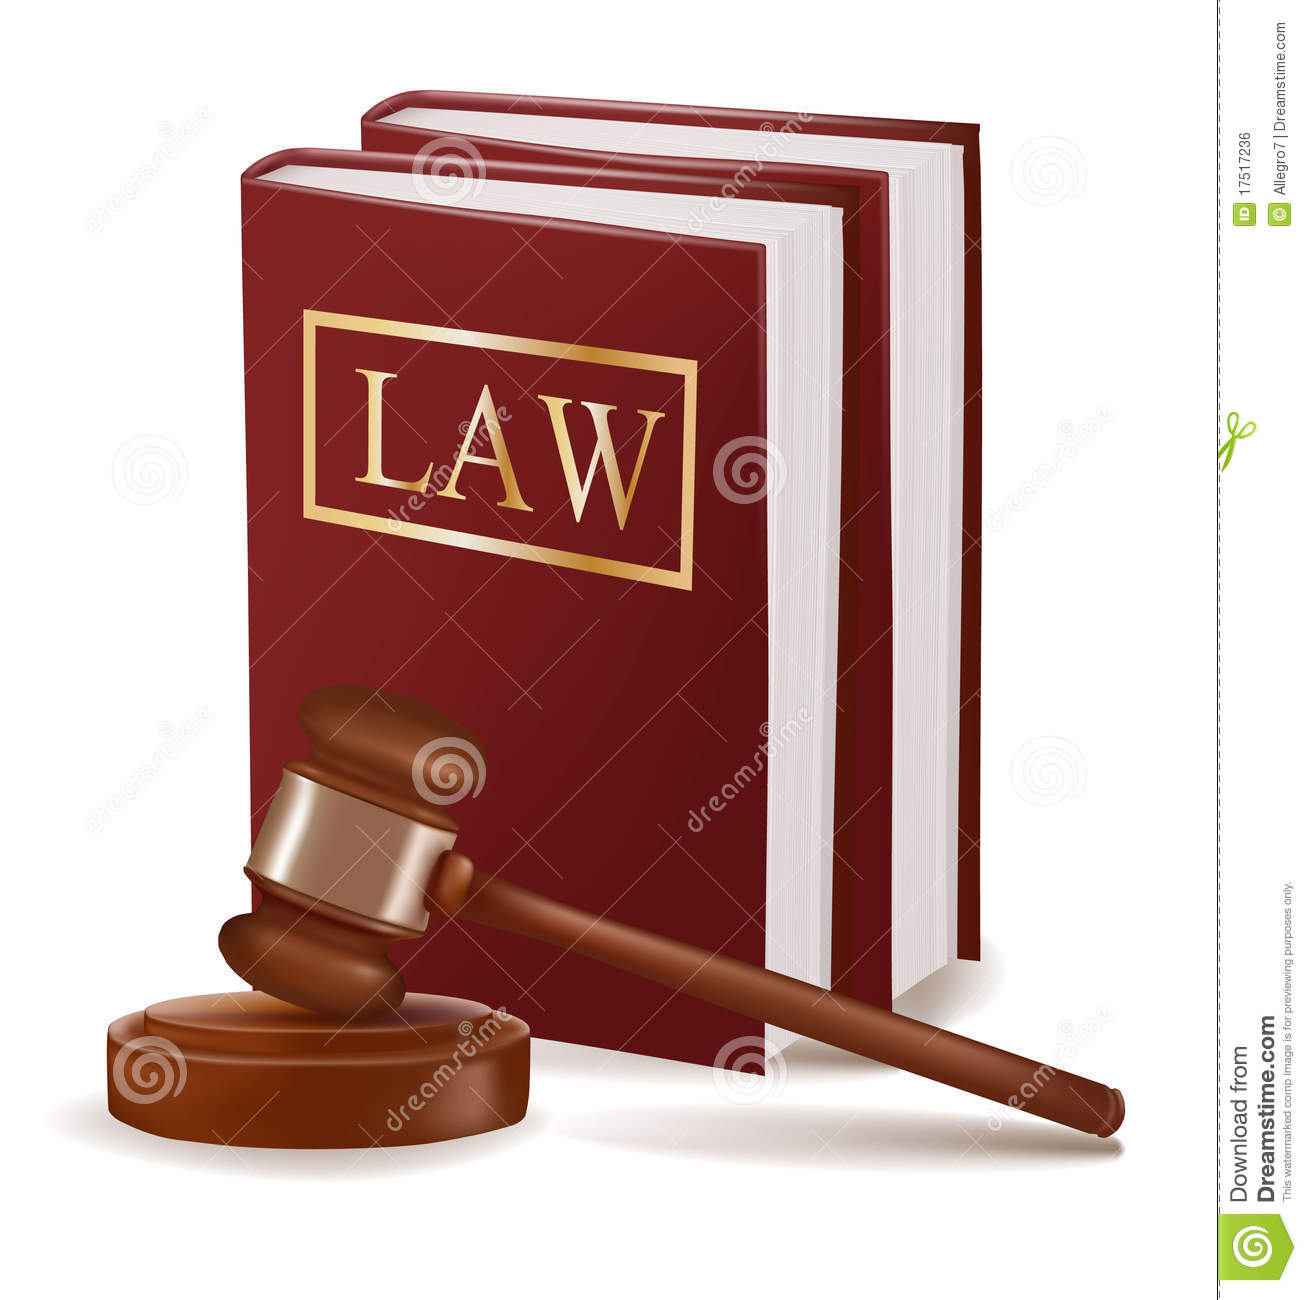 law book clipart - photo #10